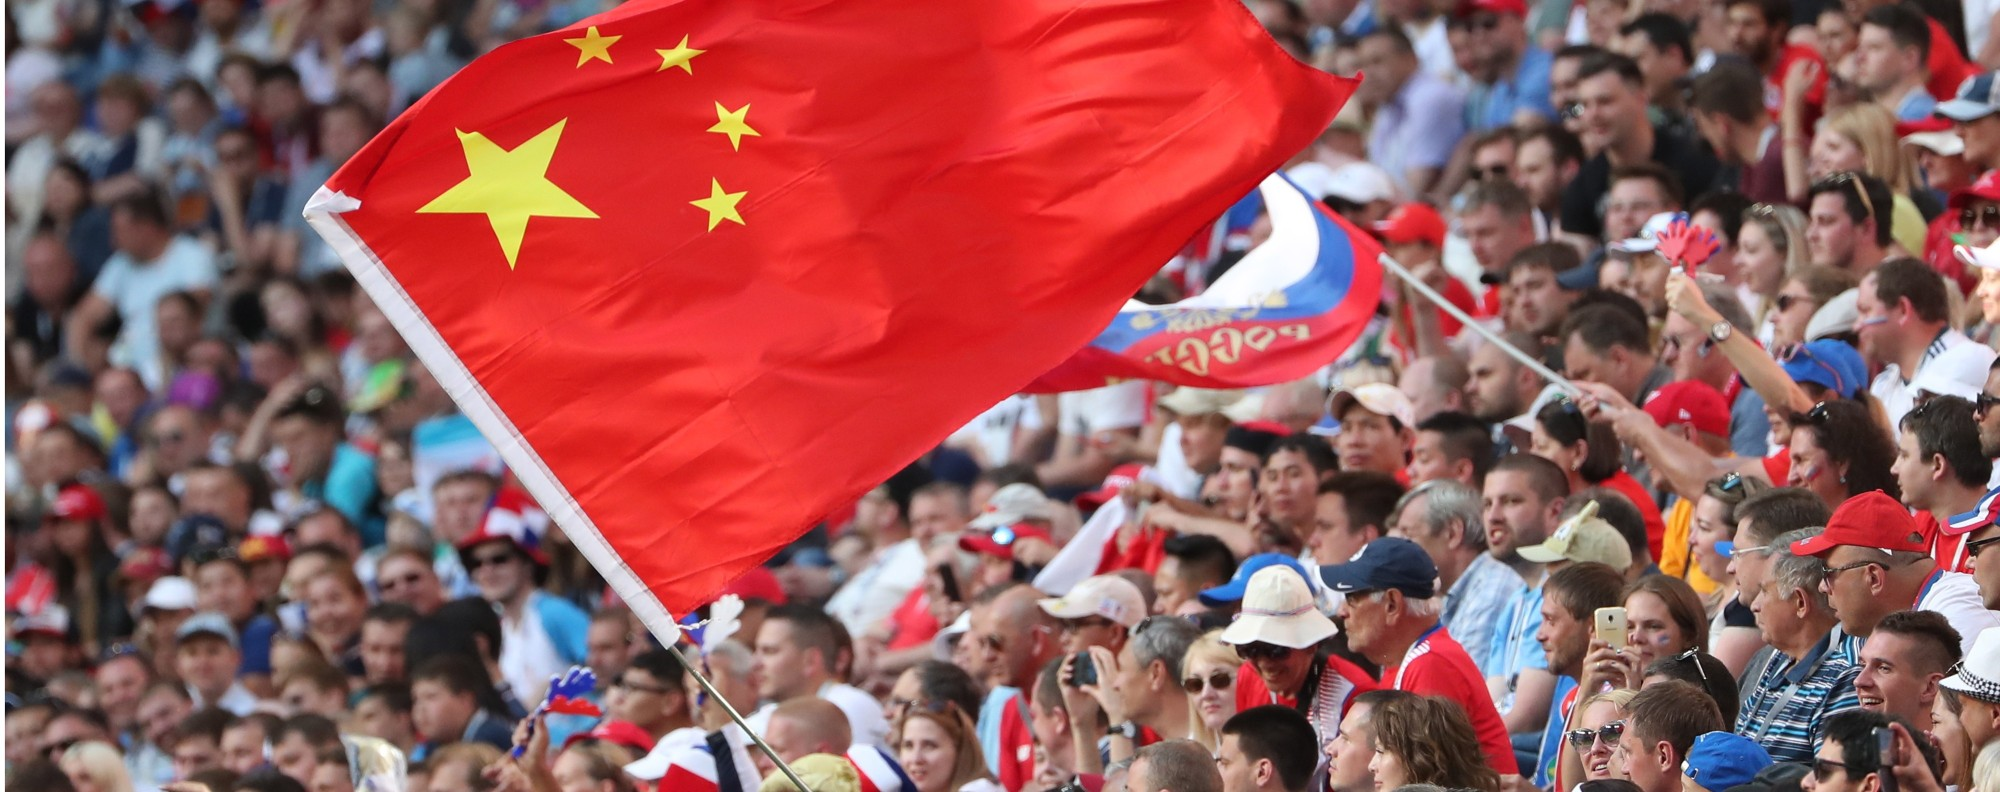 Fan waves the flag of China at the World Cup. Photo: EPA